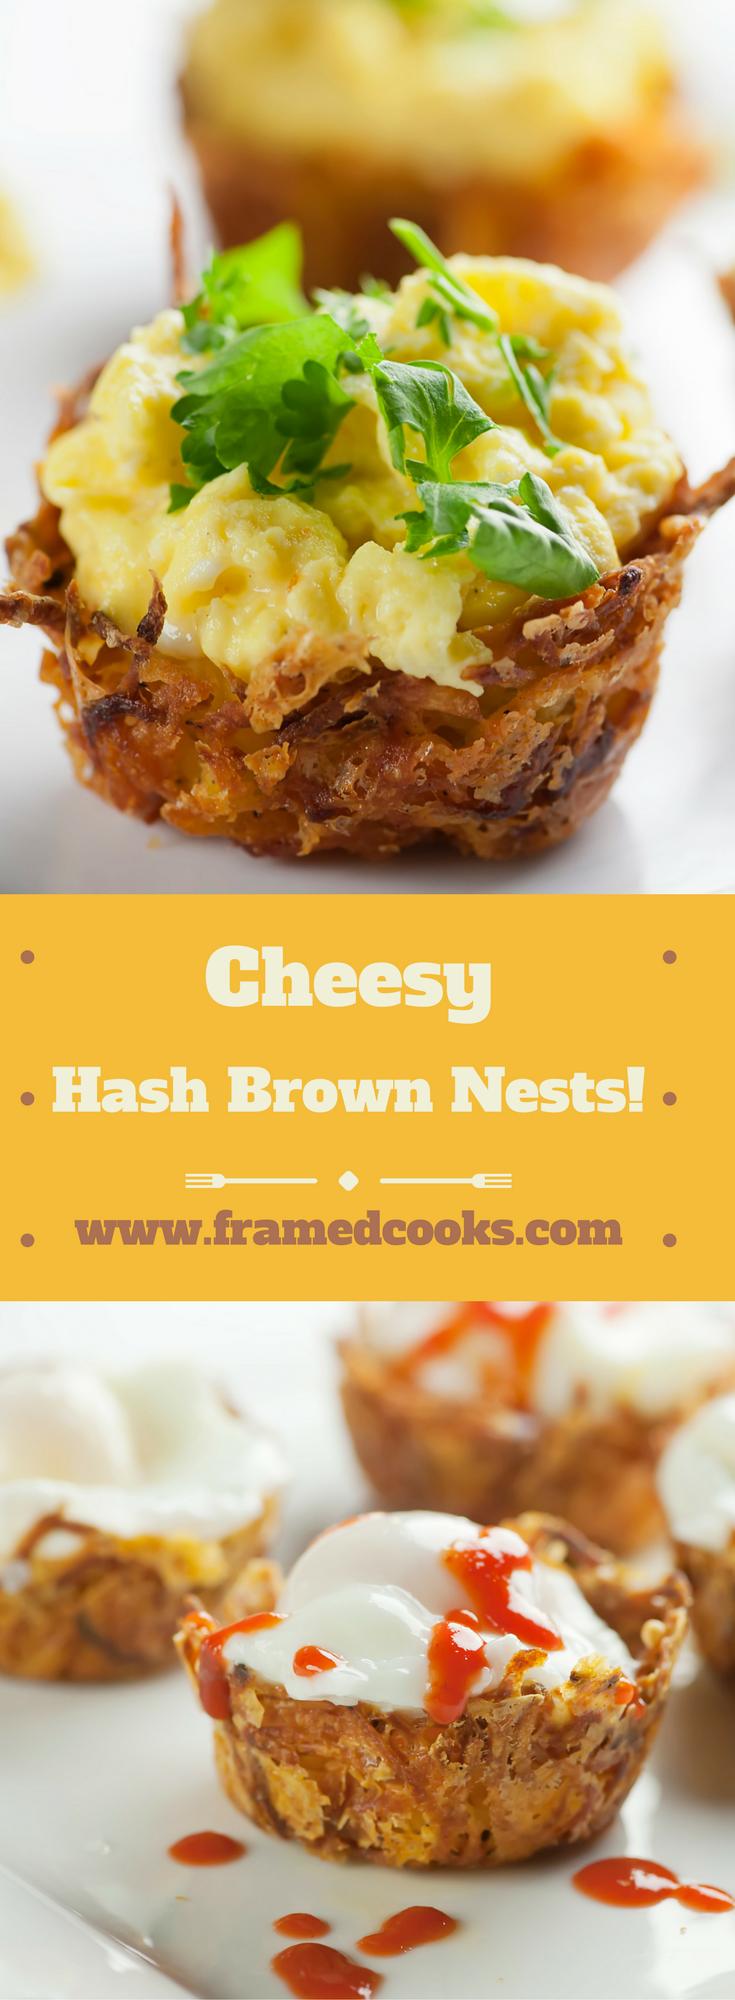 This easy recipe for cheesy hash brown nests is a fun way to serve poached, soft boiled and scrambled eggs.  And they are great for barbecue, too!